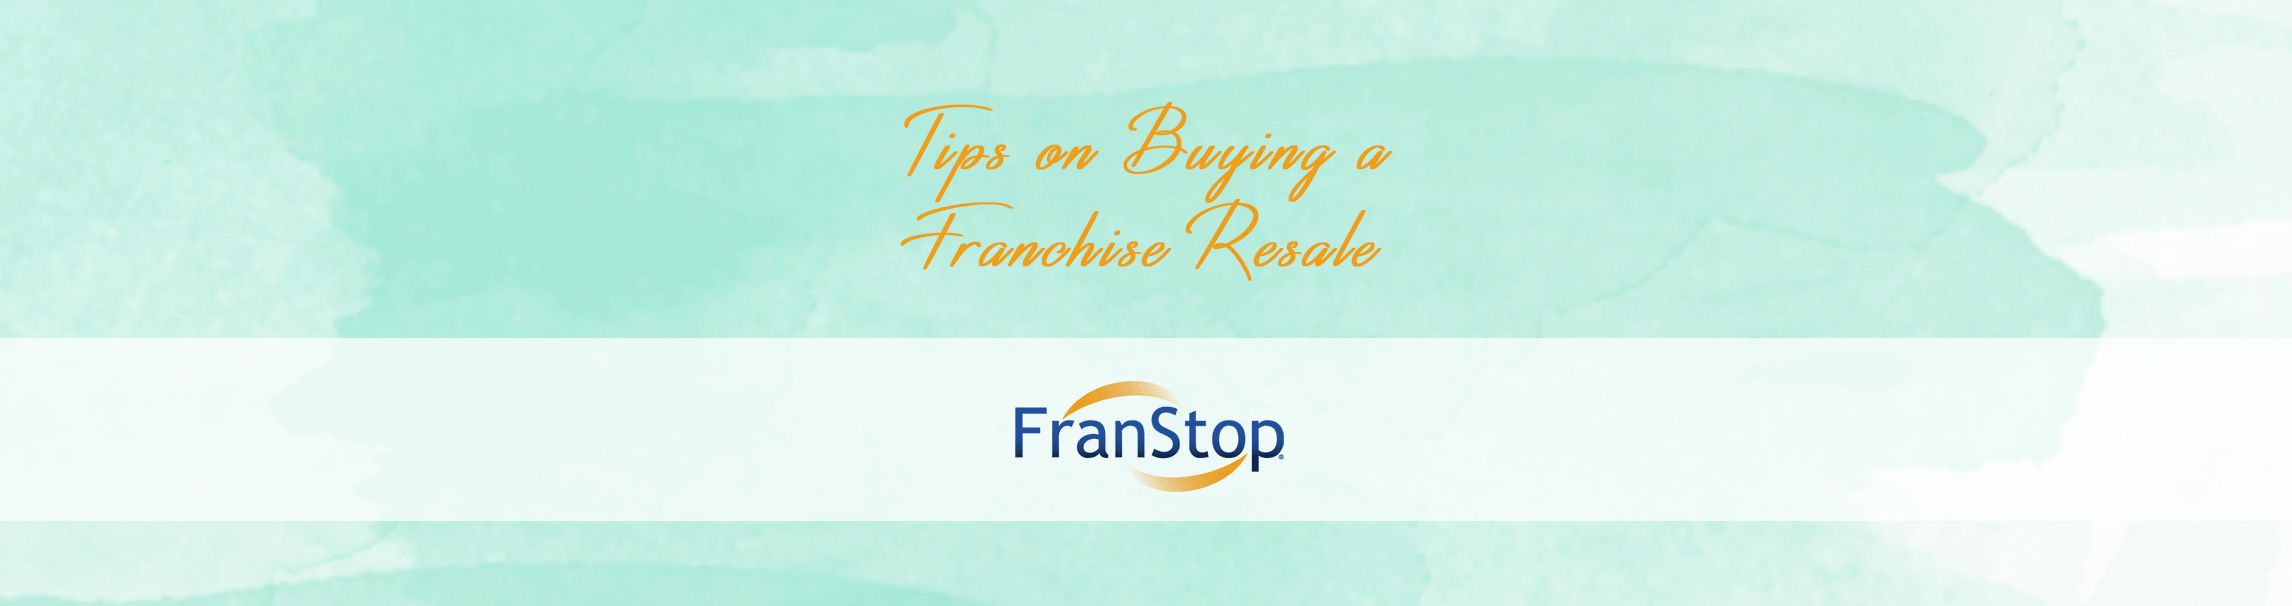 Franchise_resale_business_existing_businesses_FranStop_franchise_for_sale